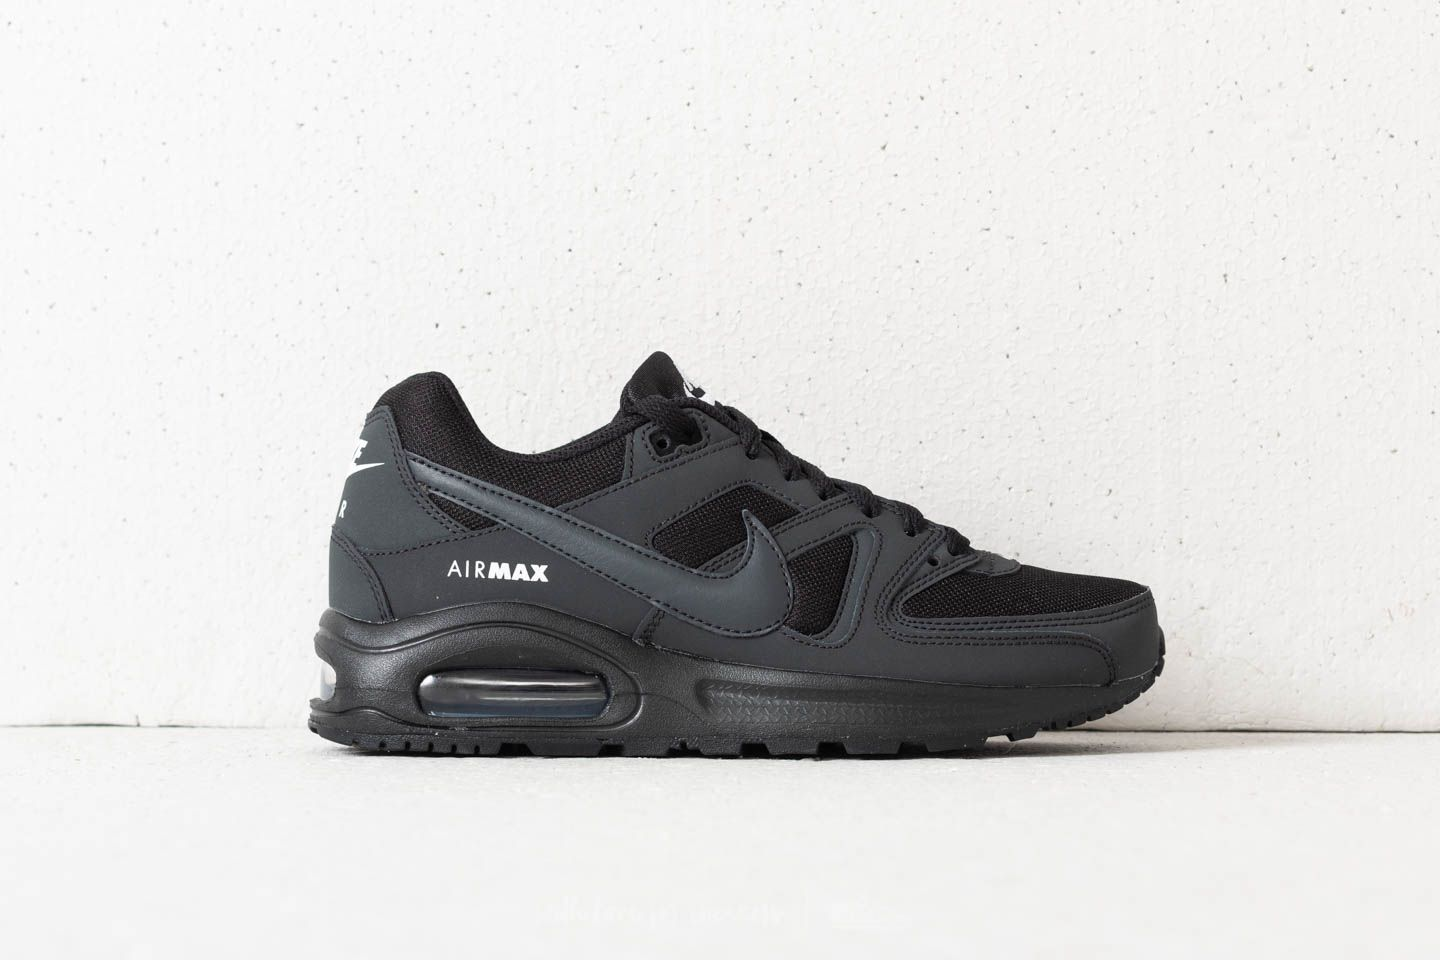 46bba21098 Nike Air Max Command Flex (GS) Black  Anthracite-White at a great